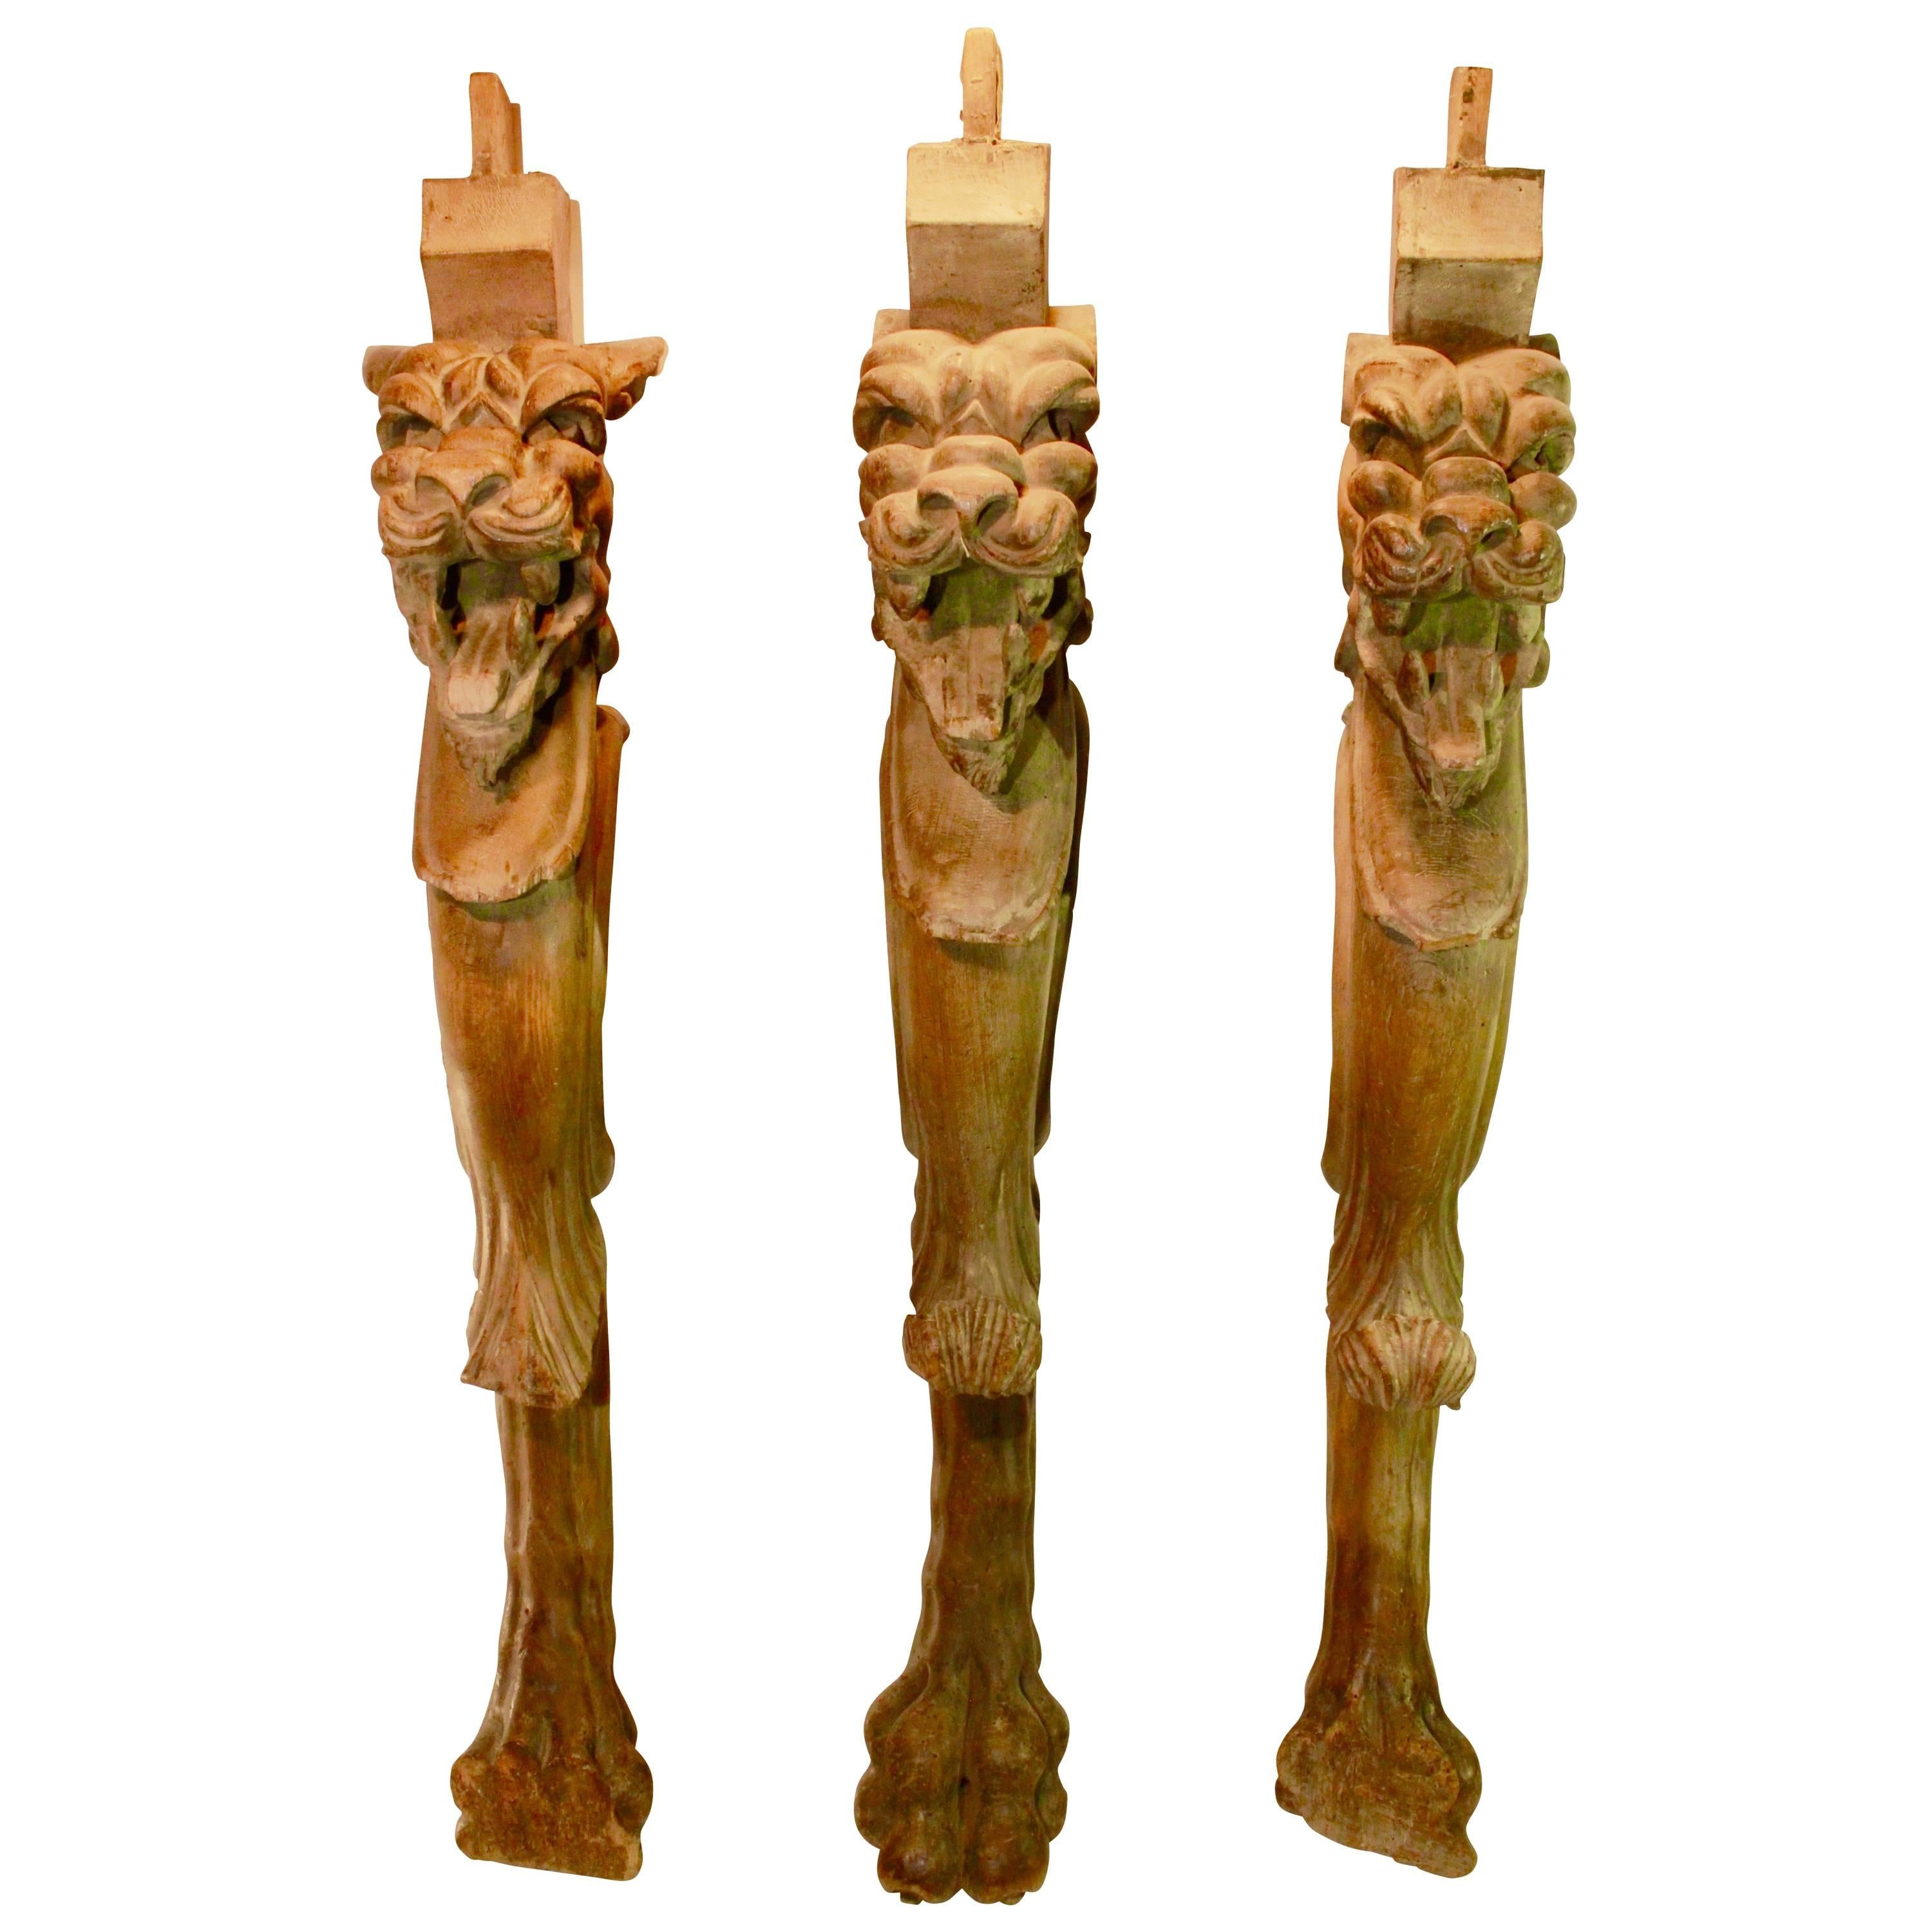 Charmant Highly Decorative Hand Carved Wooden Table Legs With Lionu0027s Head, Circa  1810 For Sale